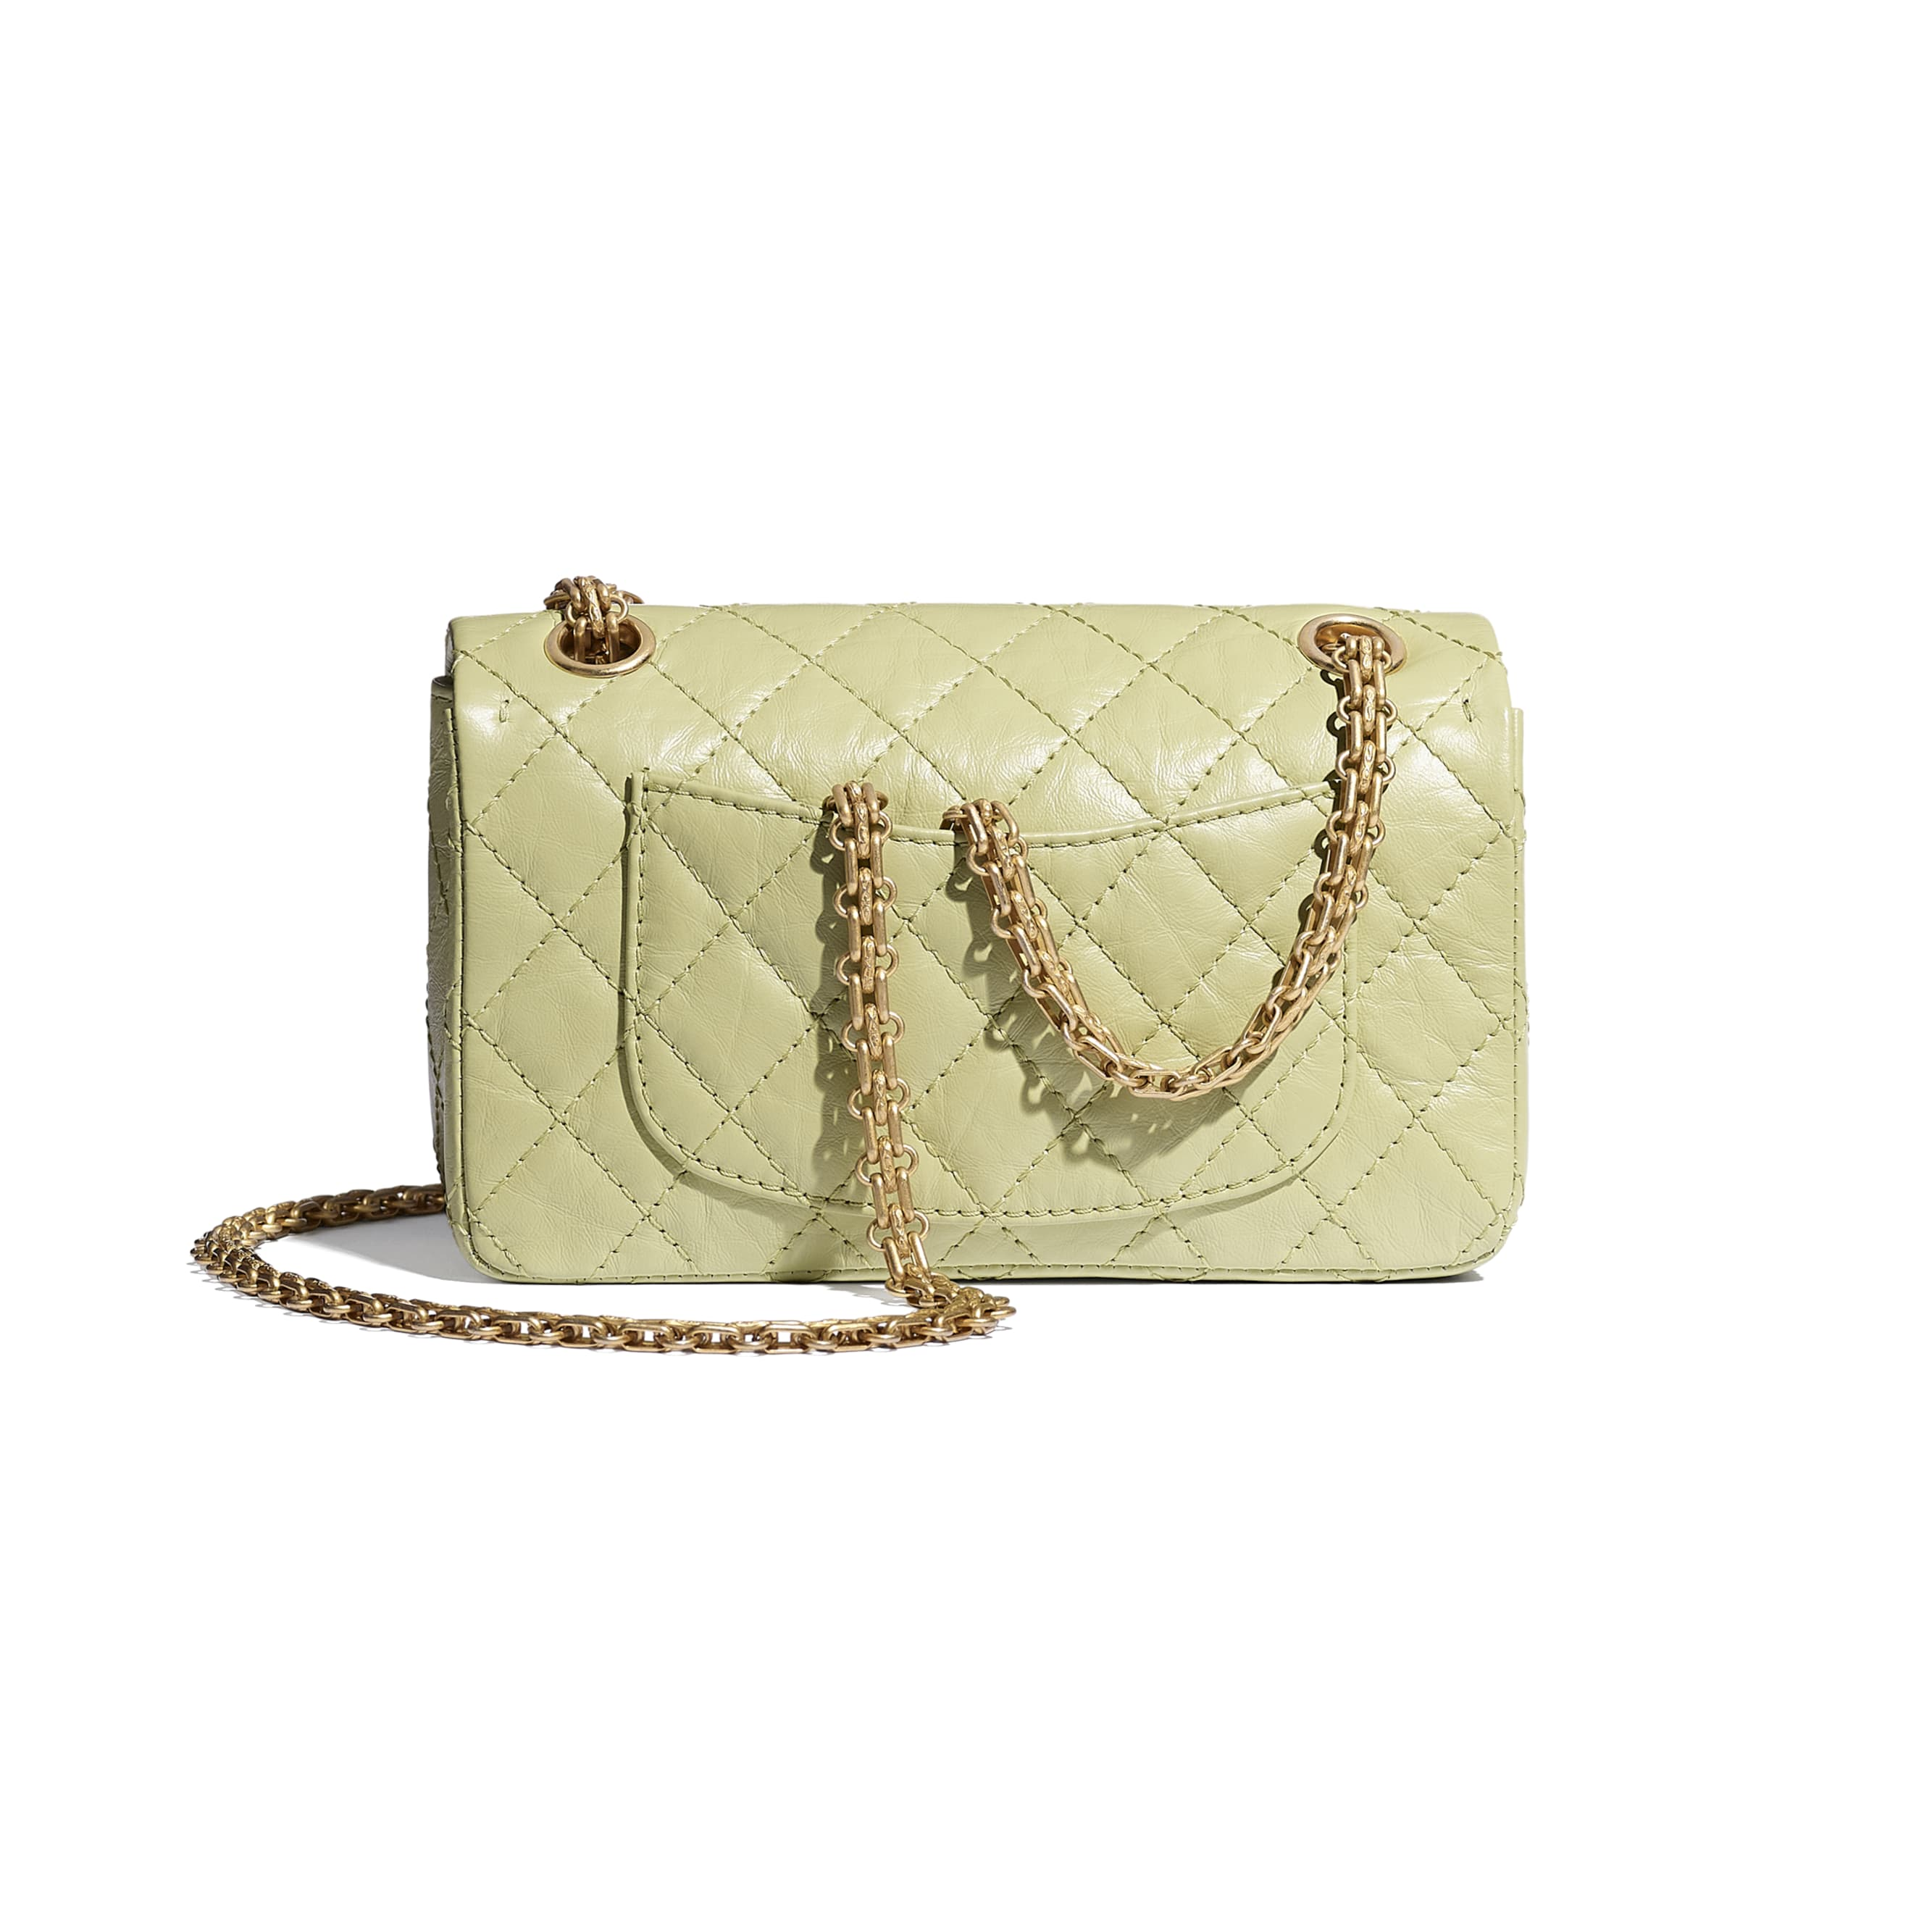 Small 2.55 Handbag - Green - Aged Calfskin & Gold-Tone Metal - CHANEL - Alternative view - see standard sized version